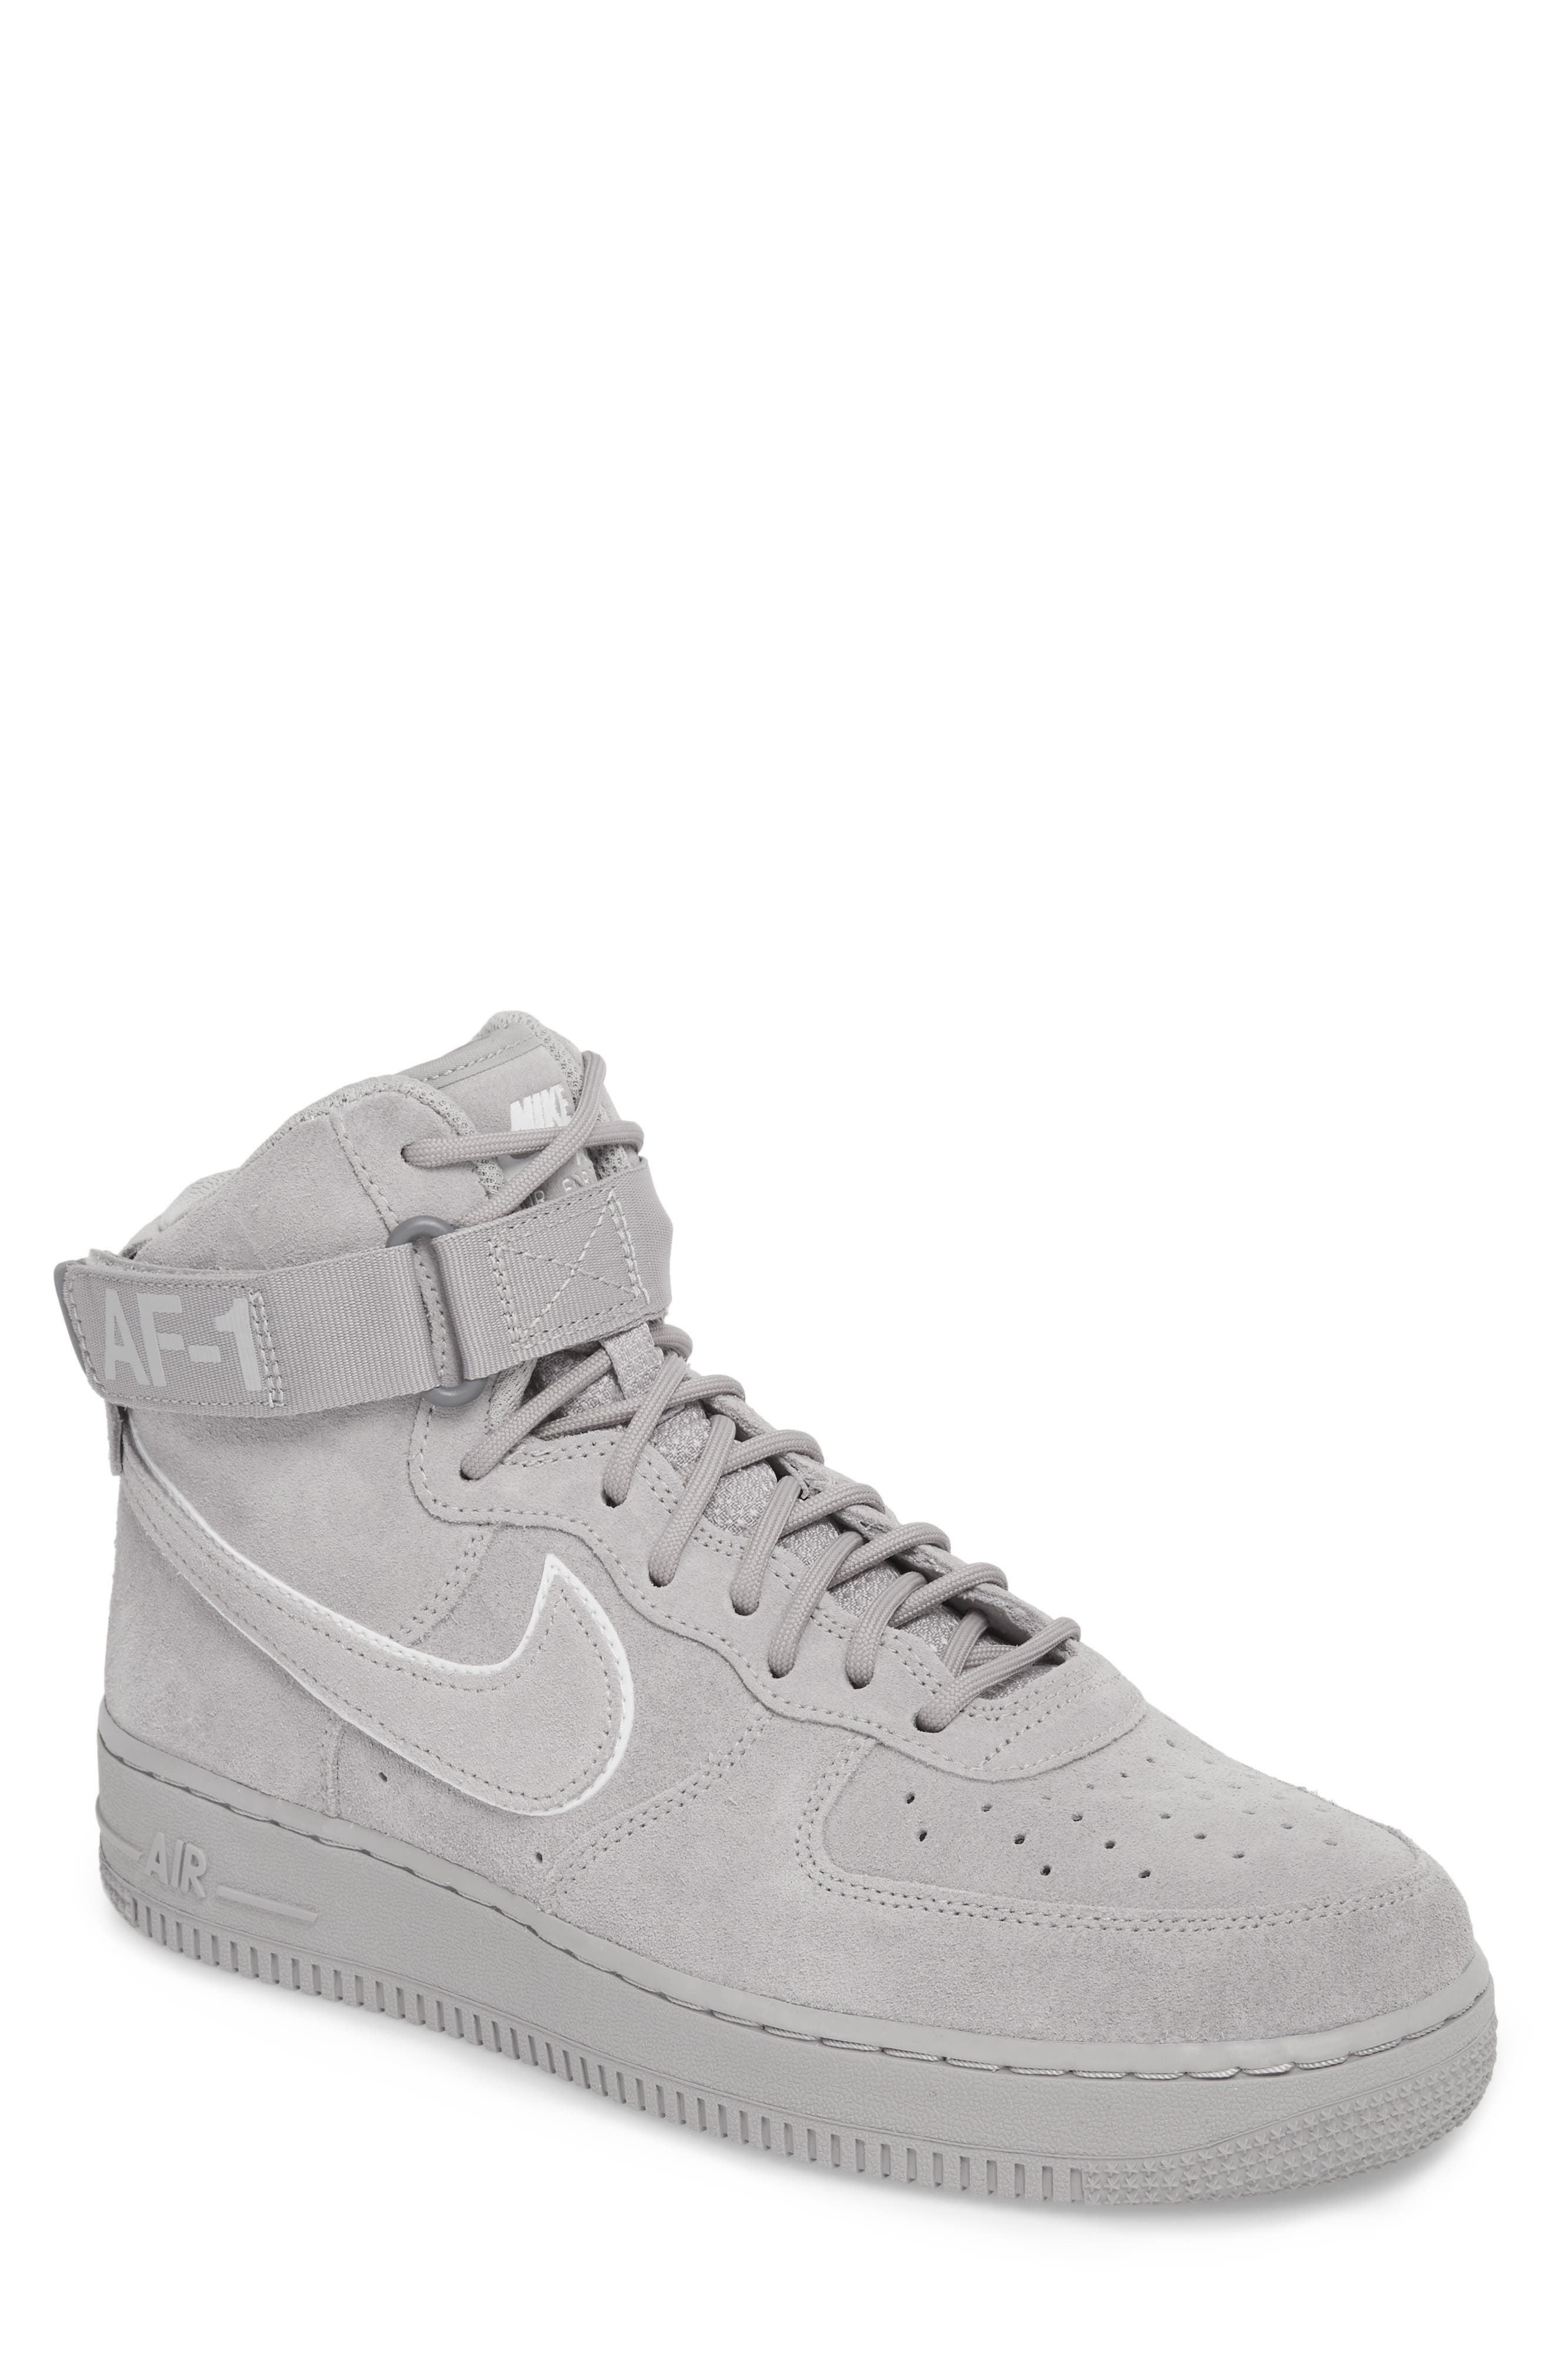 Air Force 1 High '07 LV8 Suede Sneaker,                         Main,                         color, 023